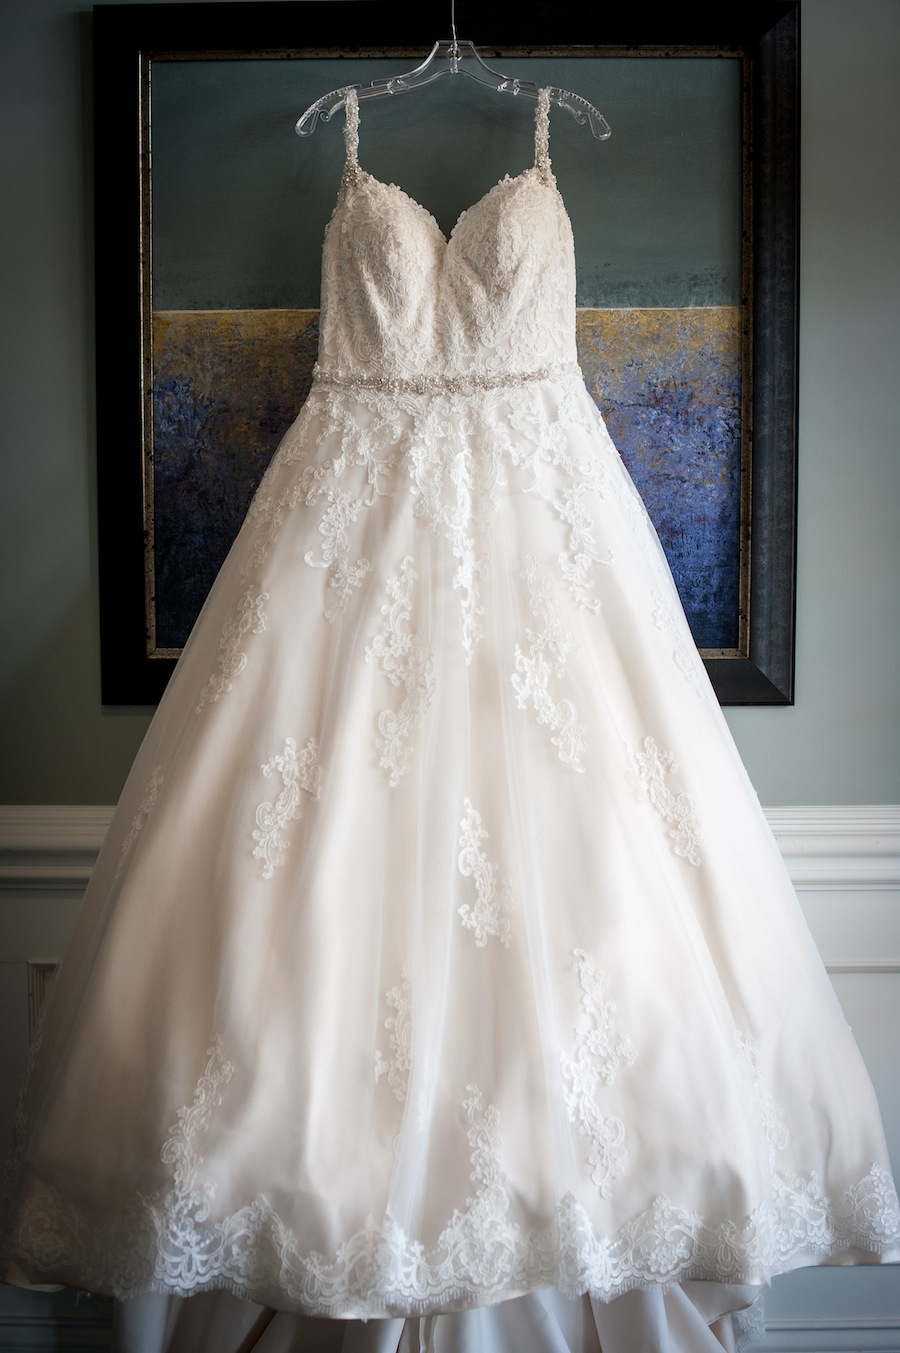 Regency-at-Dominion-Valley-Wedding-Dress-Andrew-Roby-Events